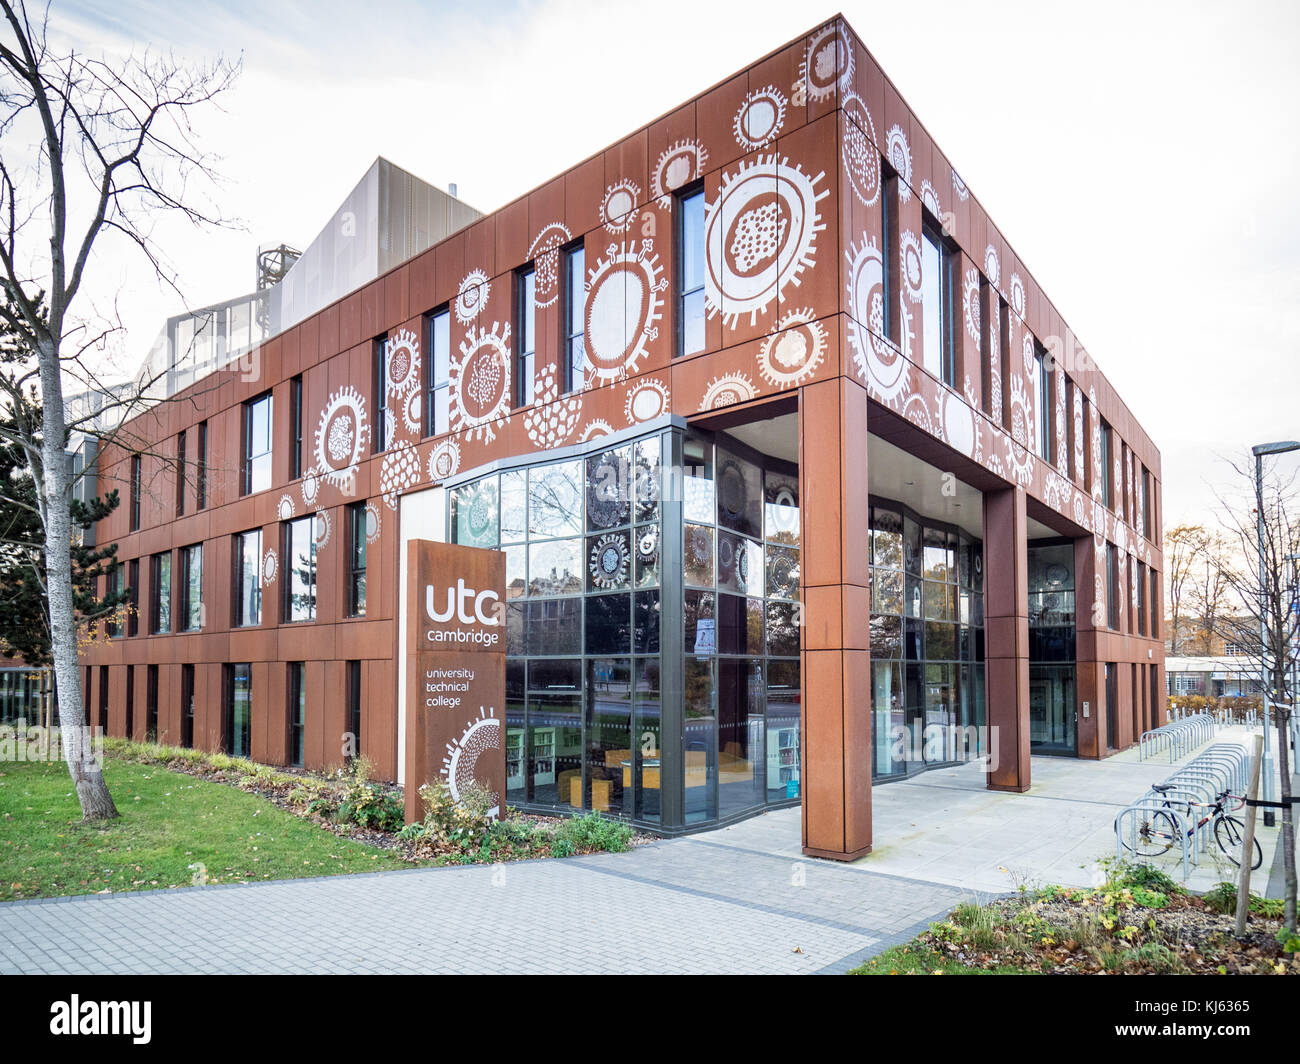 Cambridge Academy for Science and Technology is a University Technical College for 14-18 year olds, opened in 2014 - Stock Image